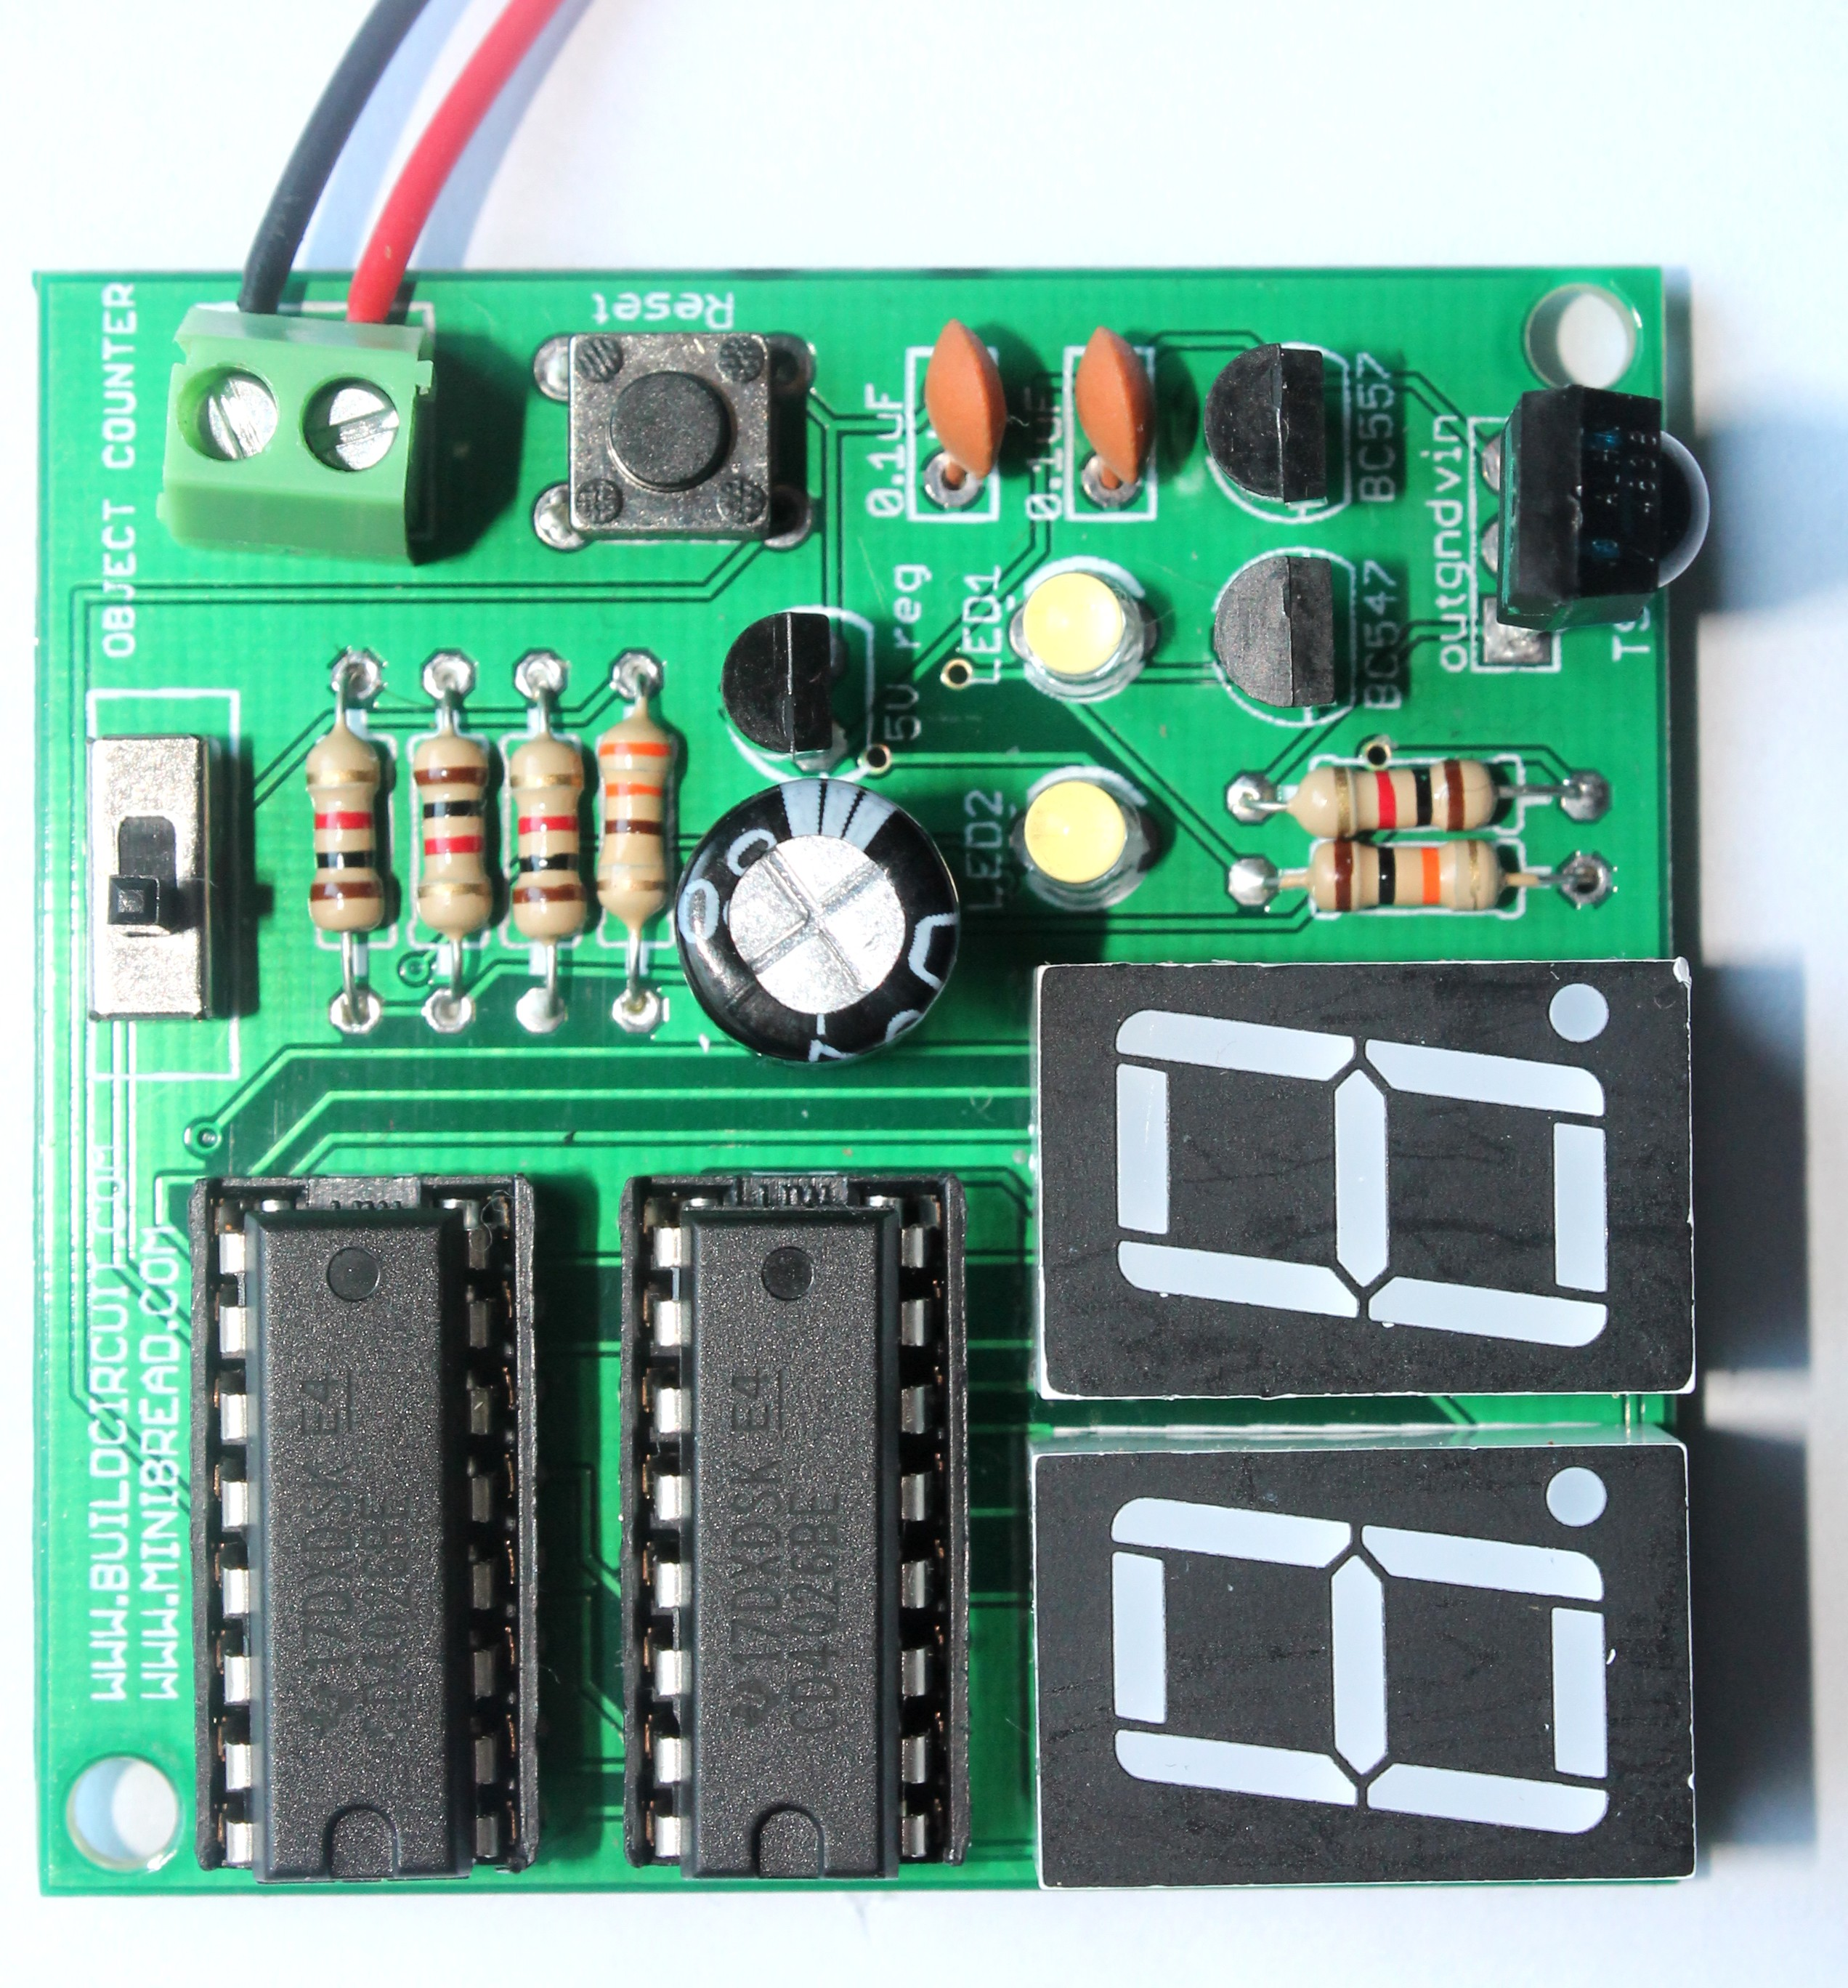 The Electronic Siren Circuit Described Here Can Create Three Different